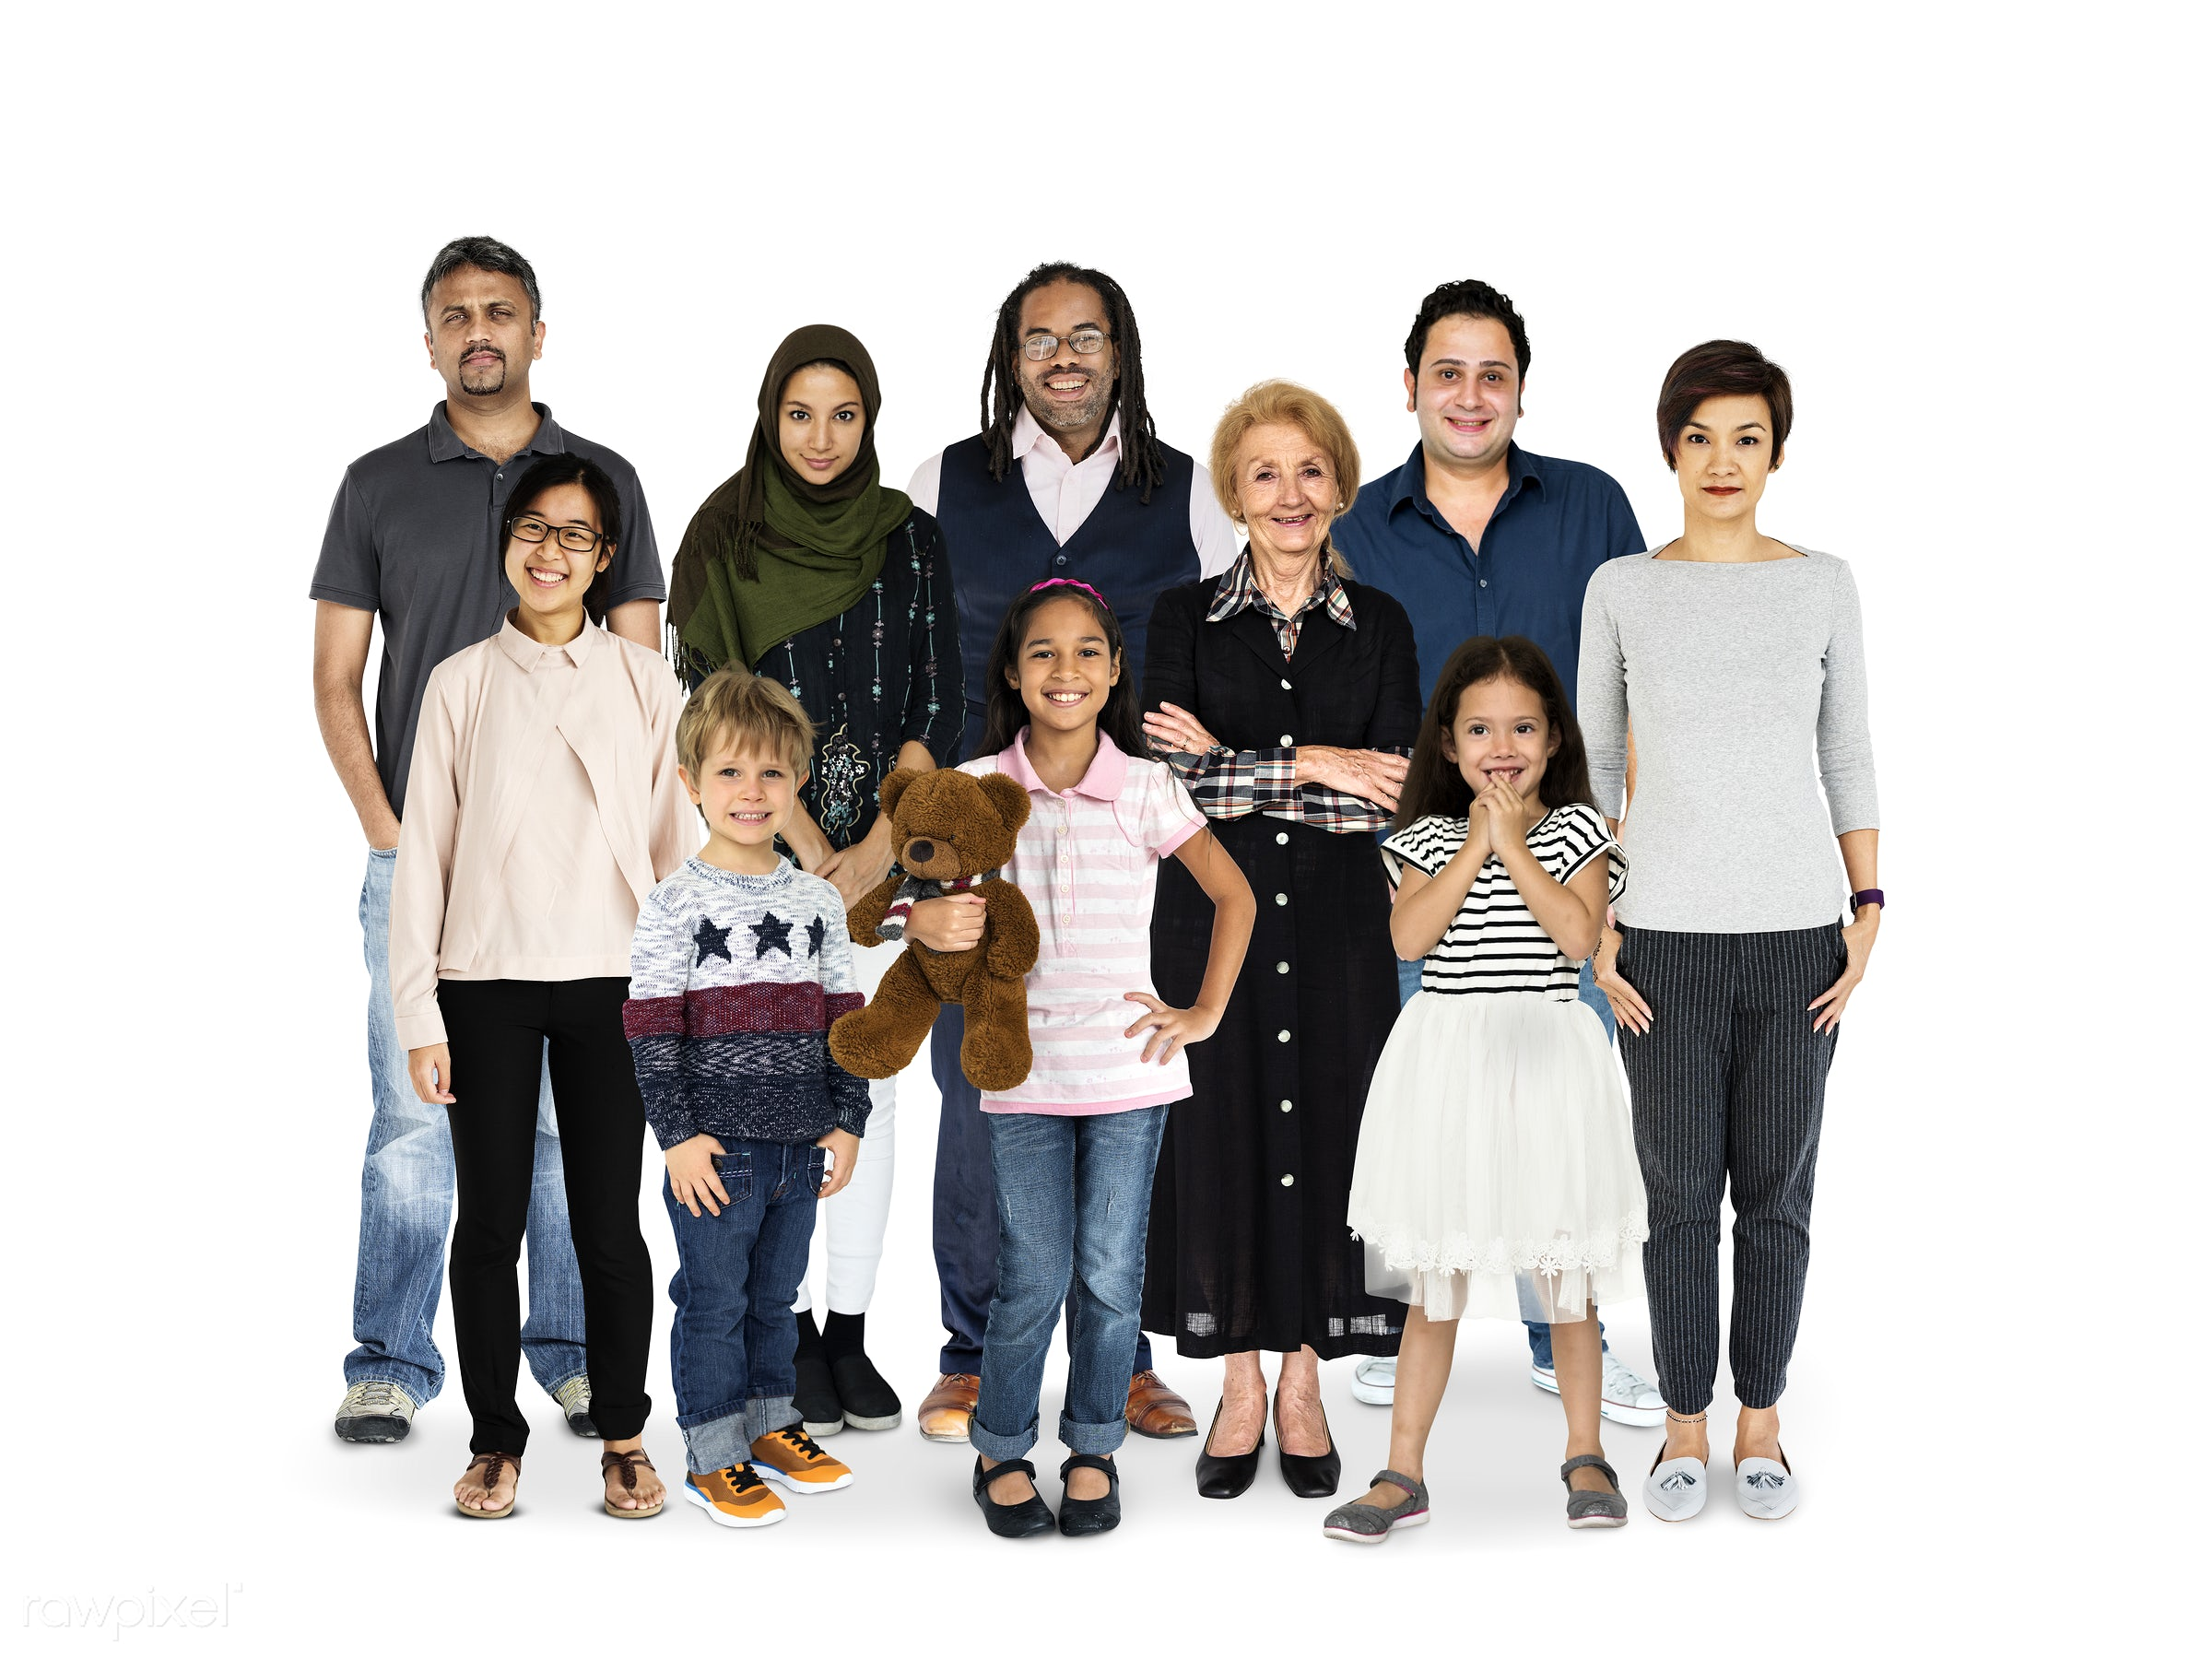 Diverse people set - adolescent, adult, baby boomer, boys, cheerful, child, children, collection, diverse, diversity,...